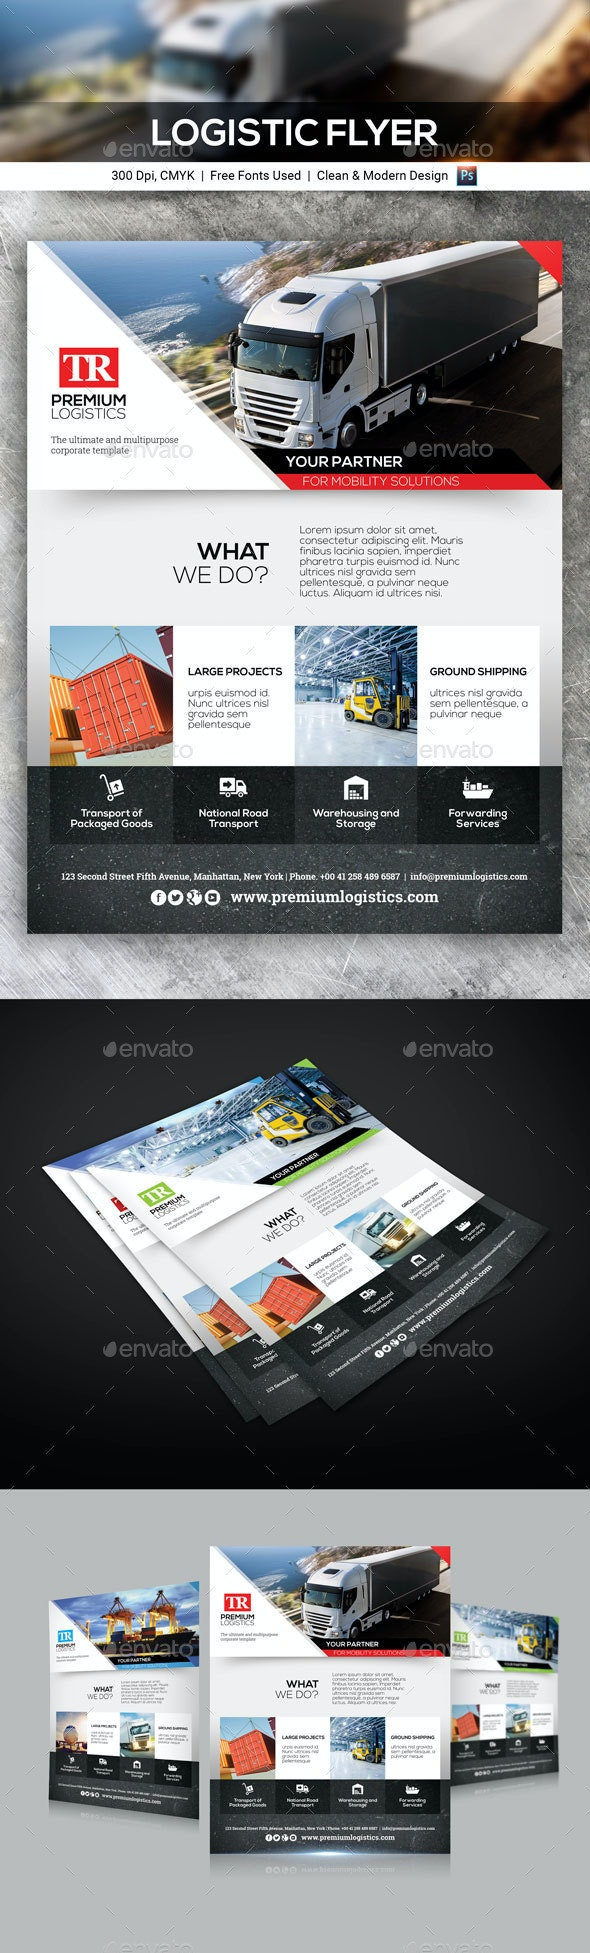 Logistic Flyer - Corporate Flyers